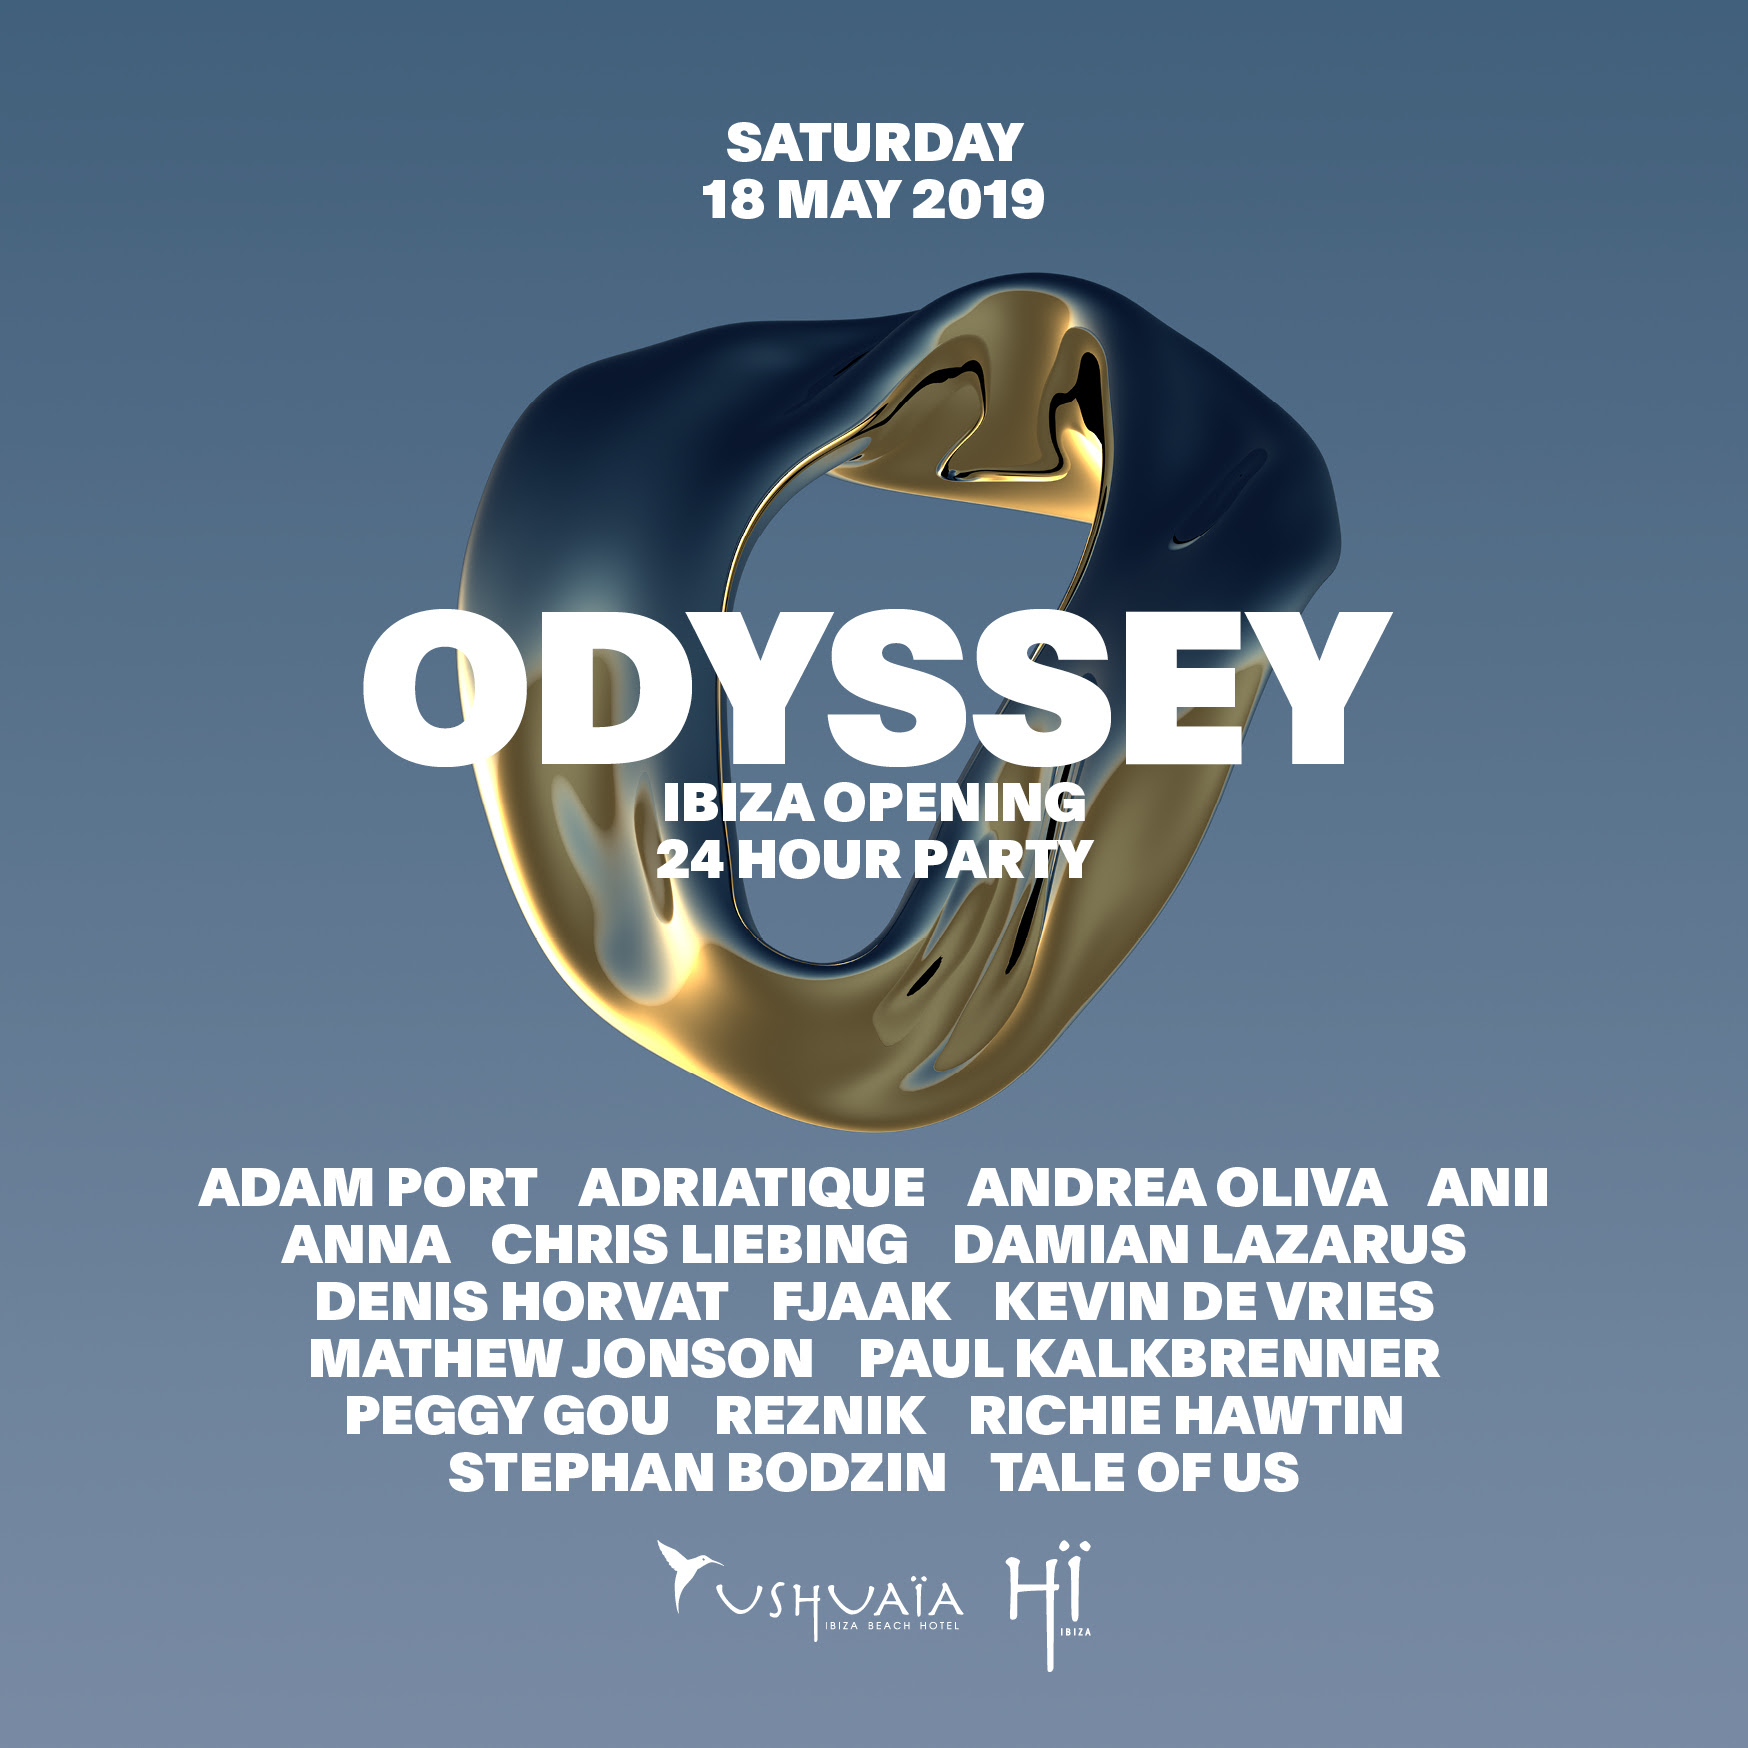 THE NIGHT LEAGUE REVEAL LINE-UP FOR 'ODYSSEY' – THE 24-HOUR OPENING PARTY EXTRAVAGANZA AT USHUAÏA AND HÏ IBIZA